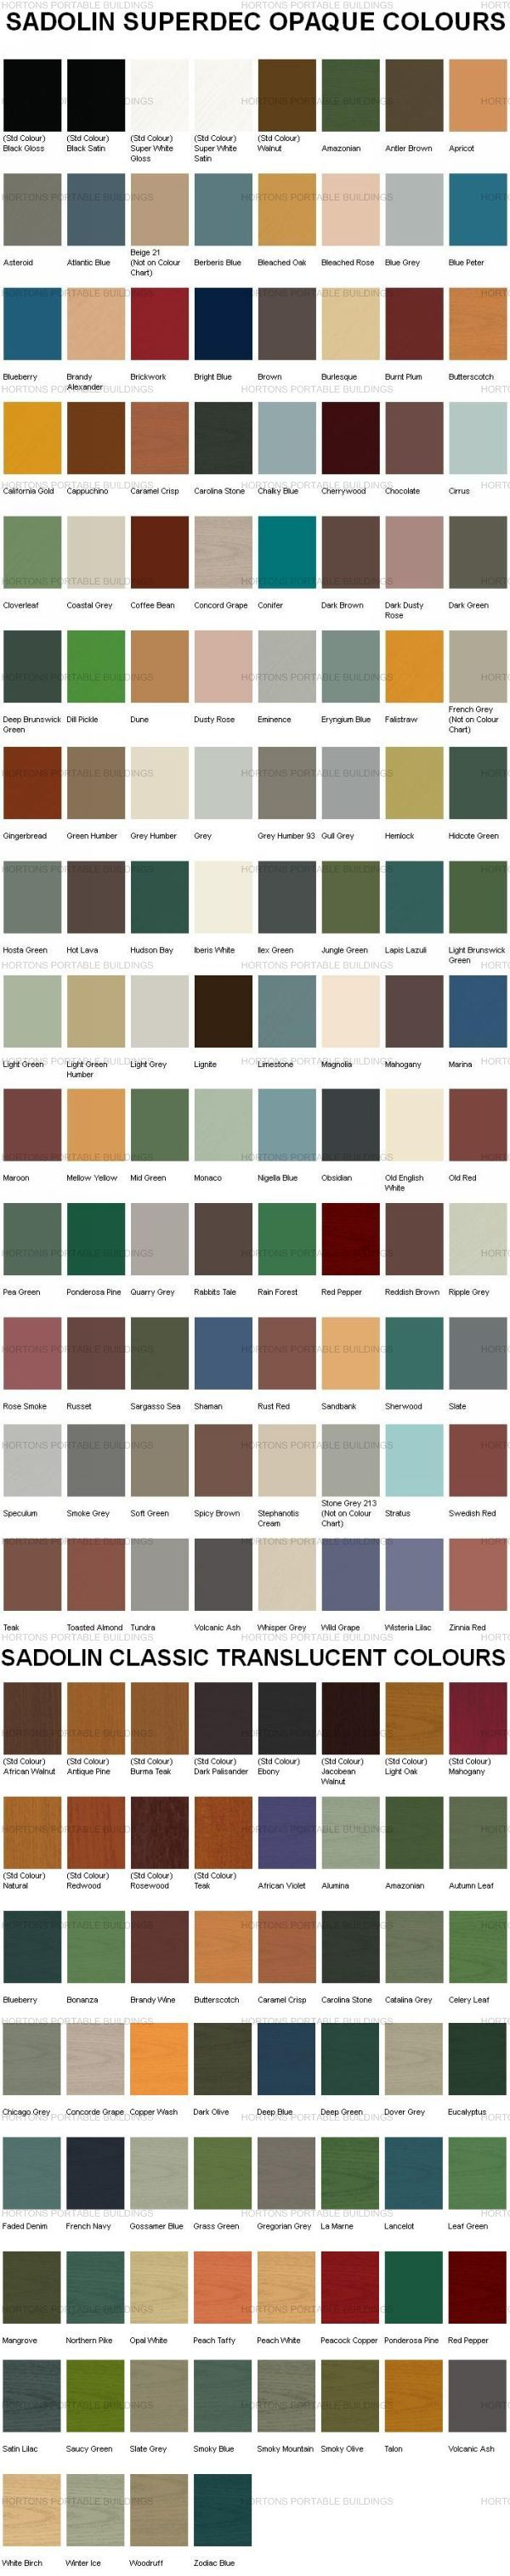 Sadolin Superdec And Classic Colour Chart Shed Colours Colorful Interiors Wood Treatment